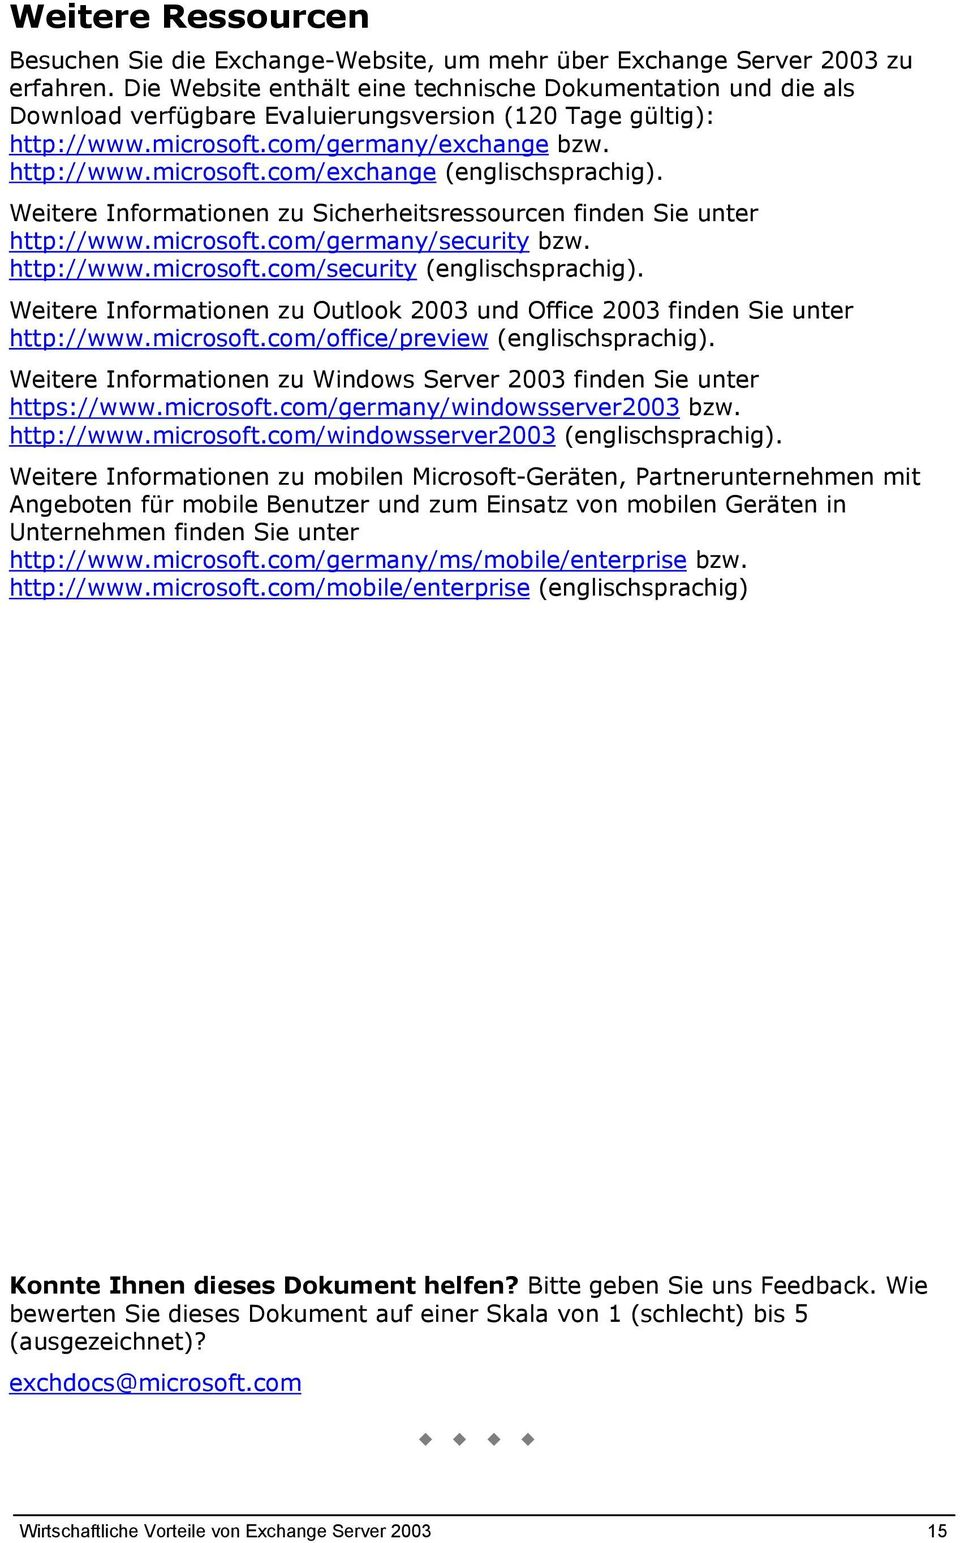 Weitere Informationen zu Sicherheitsressourcen finden Sie unter http://www.microsoft.com/germany/security bzw. http://www.microsoft.com/security (englischsprachig).